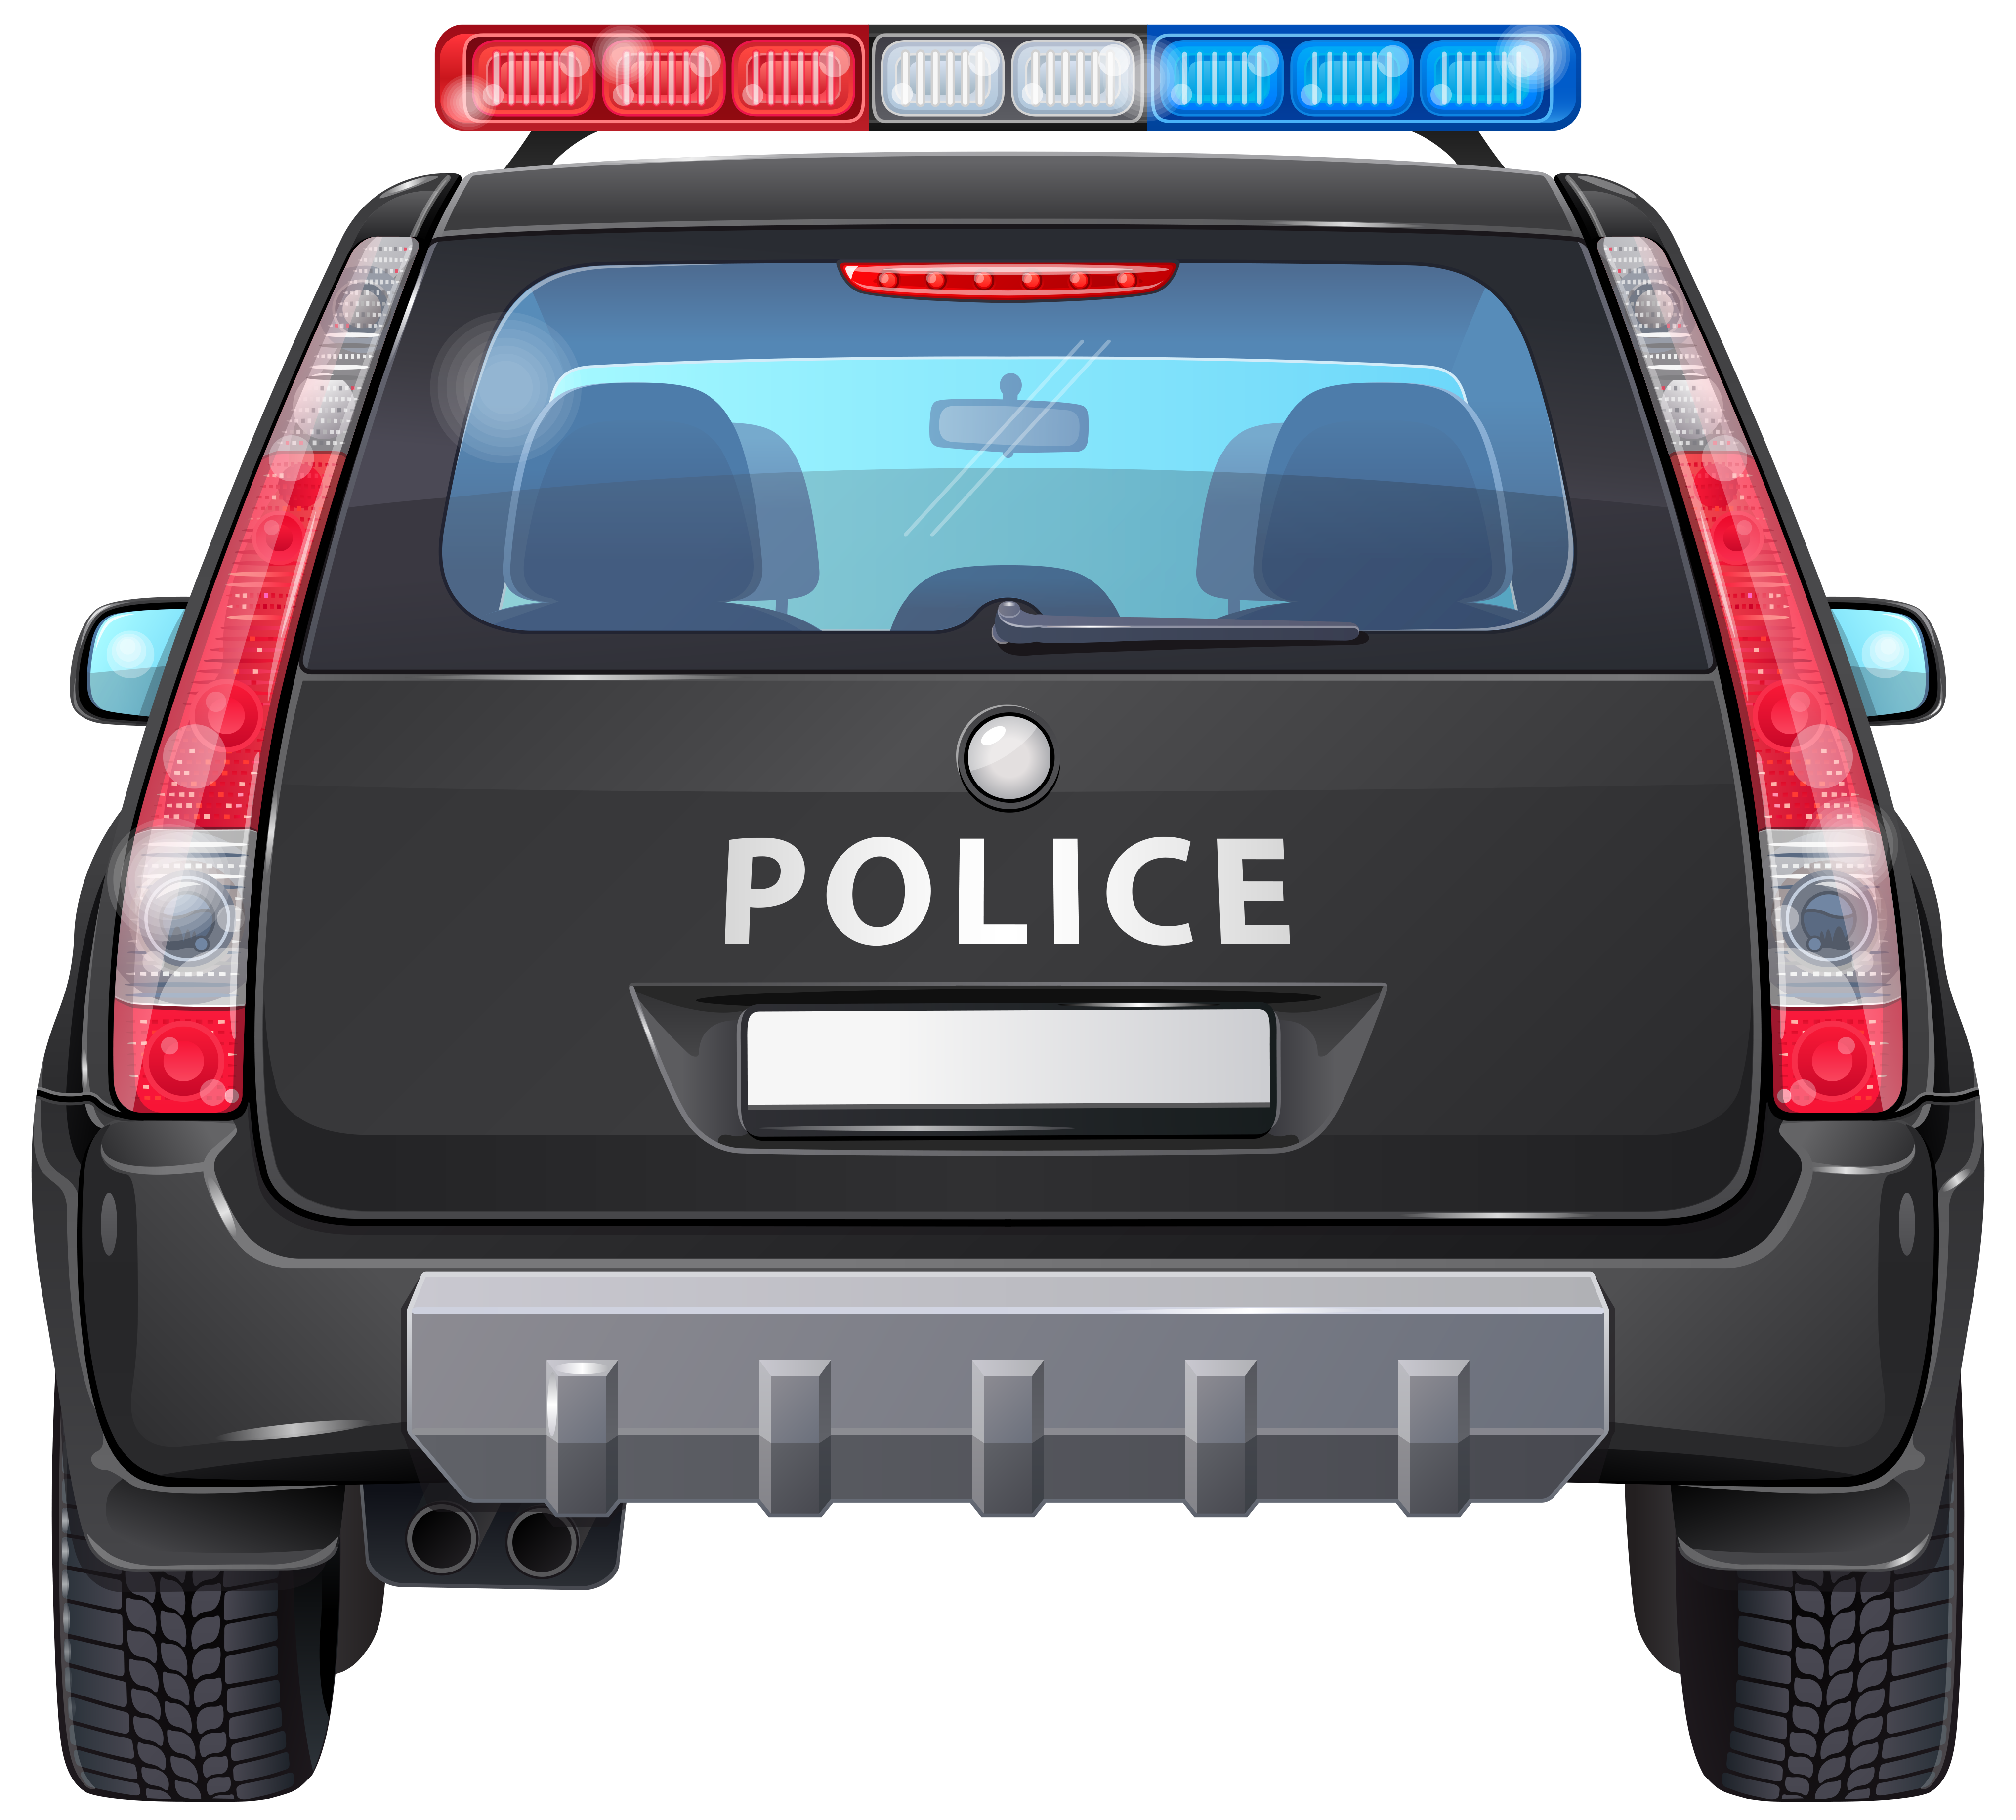 Clipart of police car png black and white download Police Car Back PNG Clip Art Image png black and white download